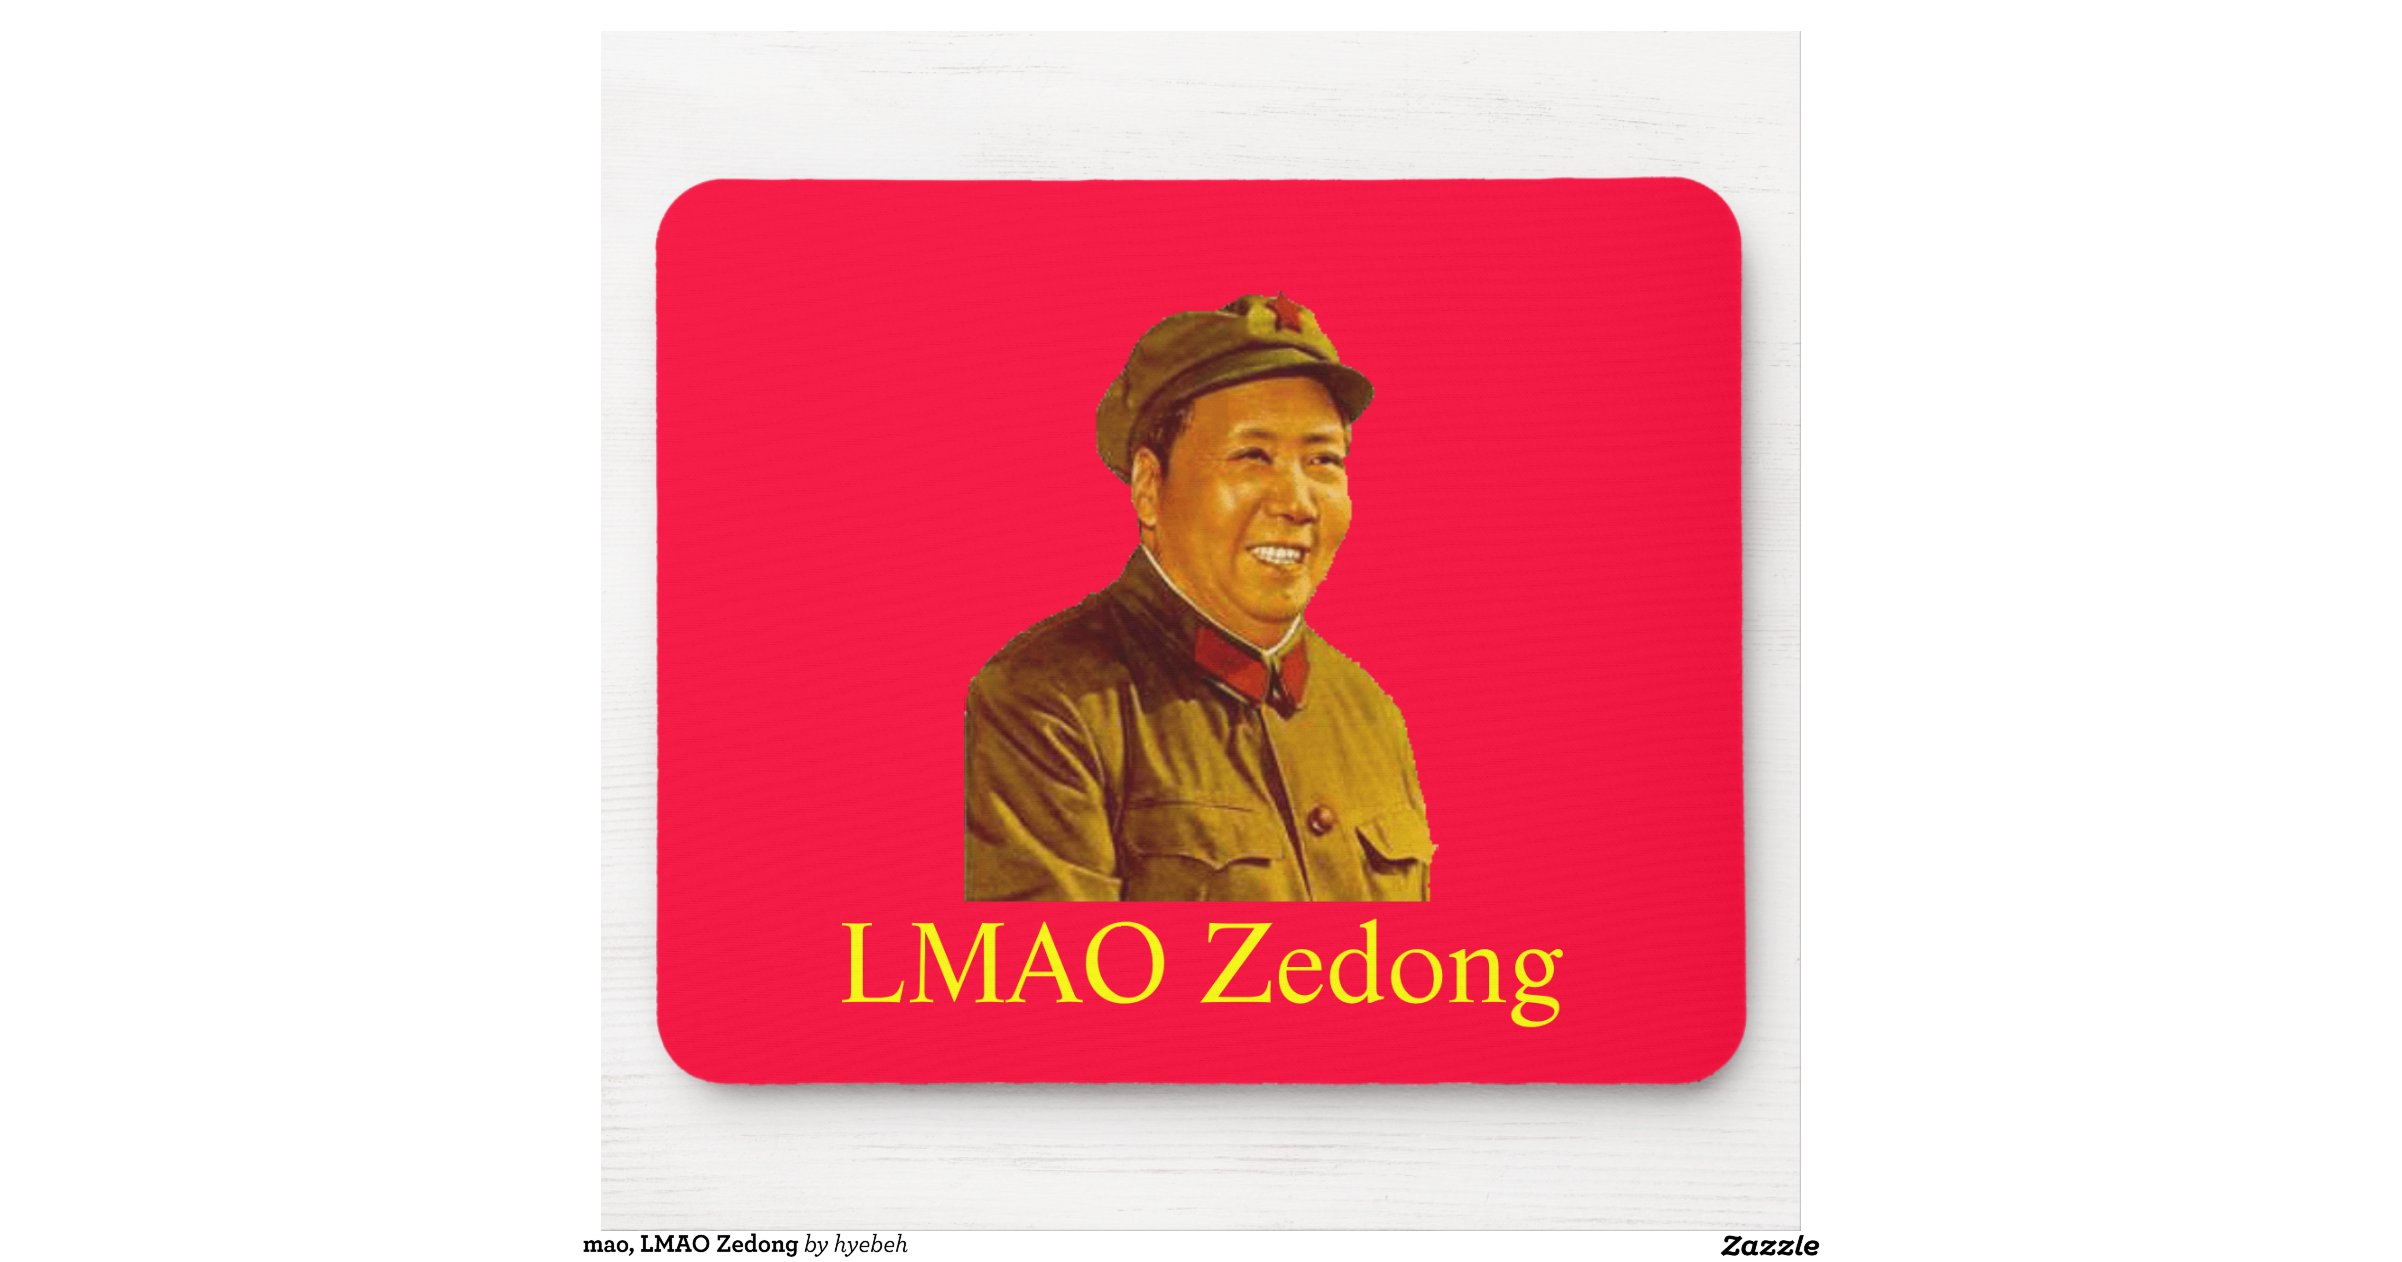 mao zedong a despotic ruler White paper 1992: tibet - its ownership and human rights situation: the dalai lama sent a telegram to chairman mao zedong noble and descendant of the ruler.